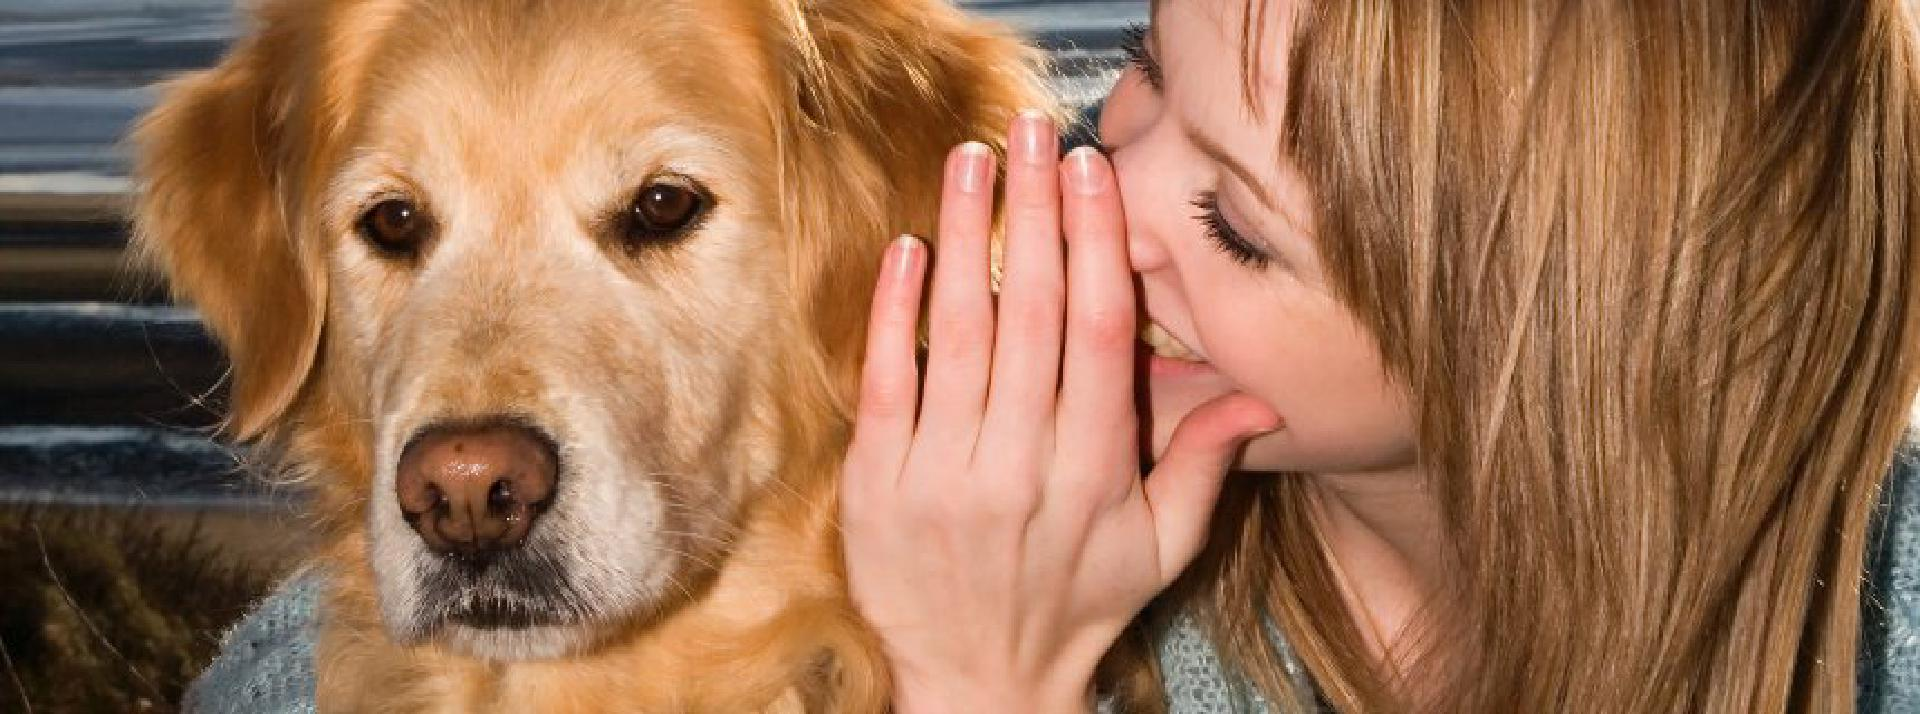 Young Woman Whispering into Dog's Ear